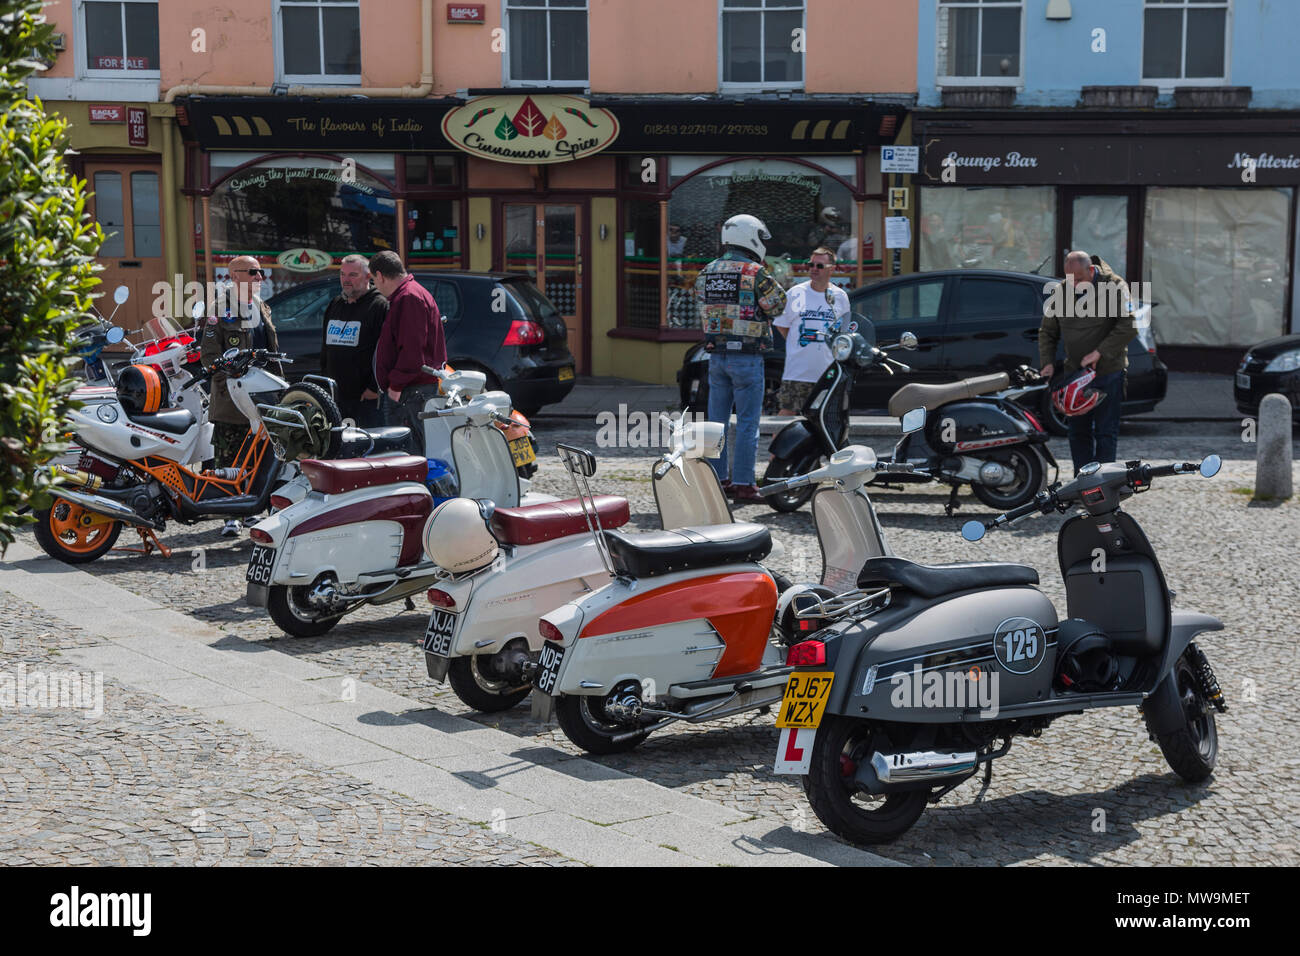 03b18b6a4 Mods weekend at Margate on 26th-27th may 2018 - Stock Image